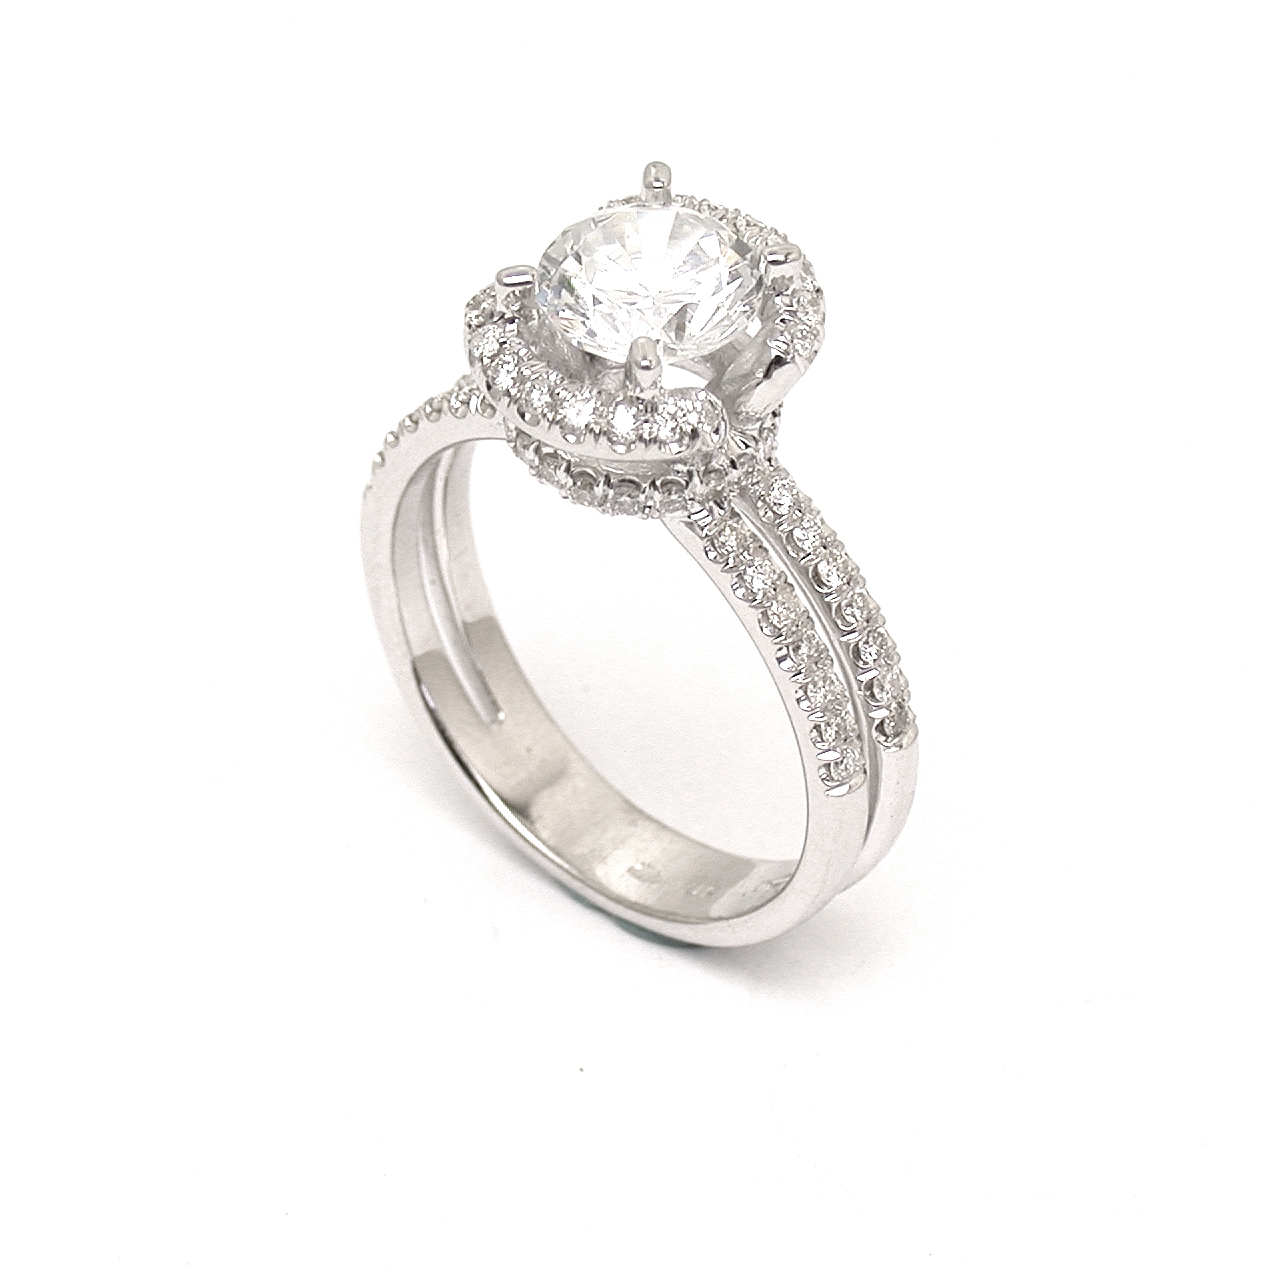 halo diamond ring 4 prongs 2 ct 14 kt white gold two rows. Black Bedroom Furniture Sets. Home Design Ideas